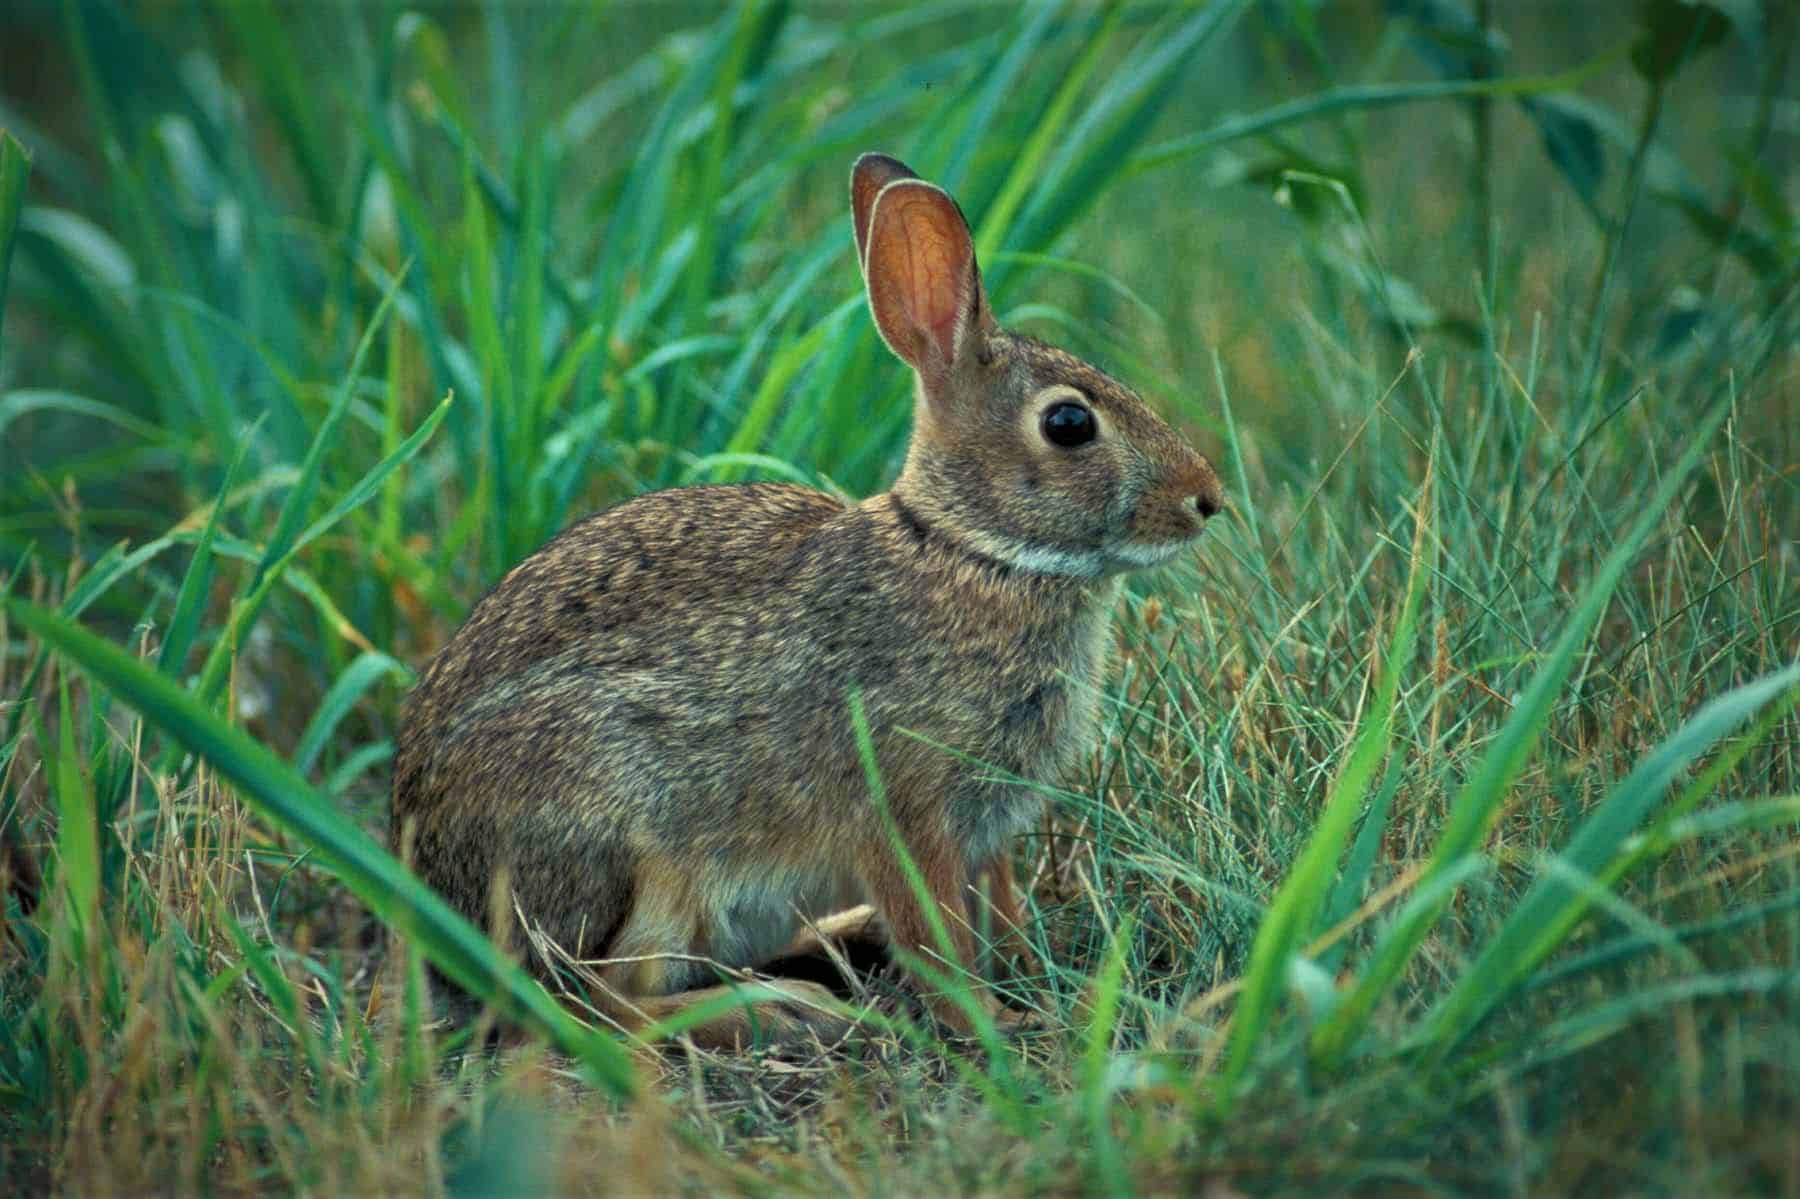 How long do eastern cottontail rabbits live